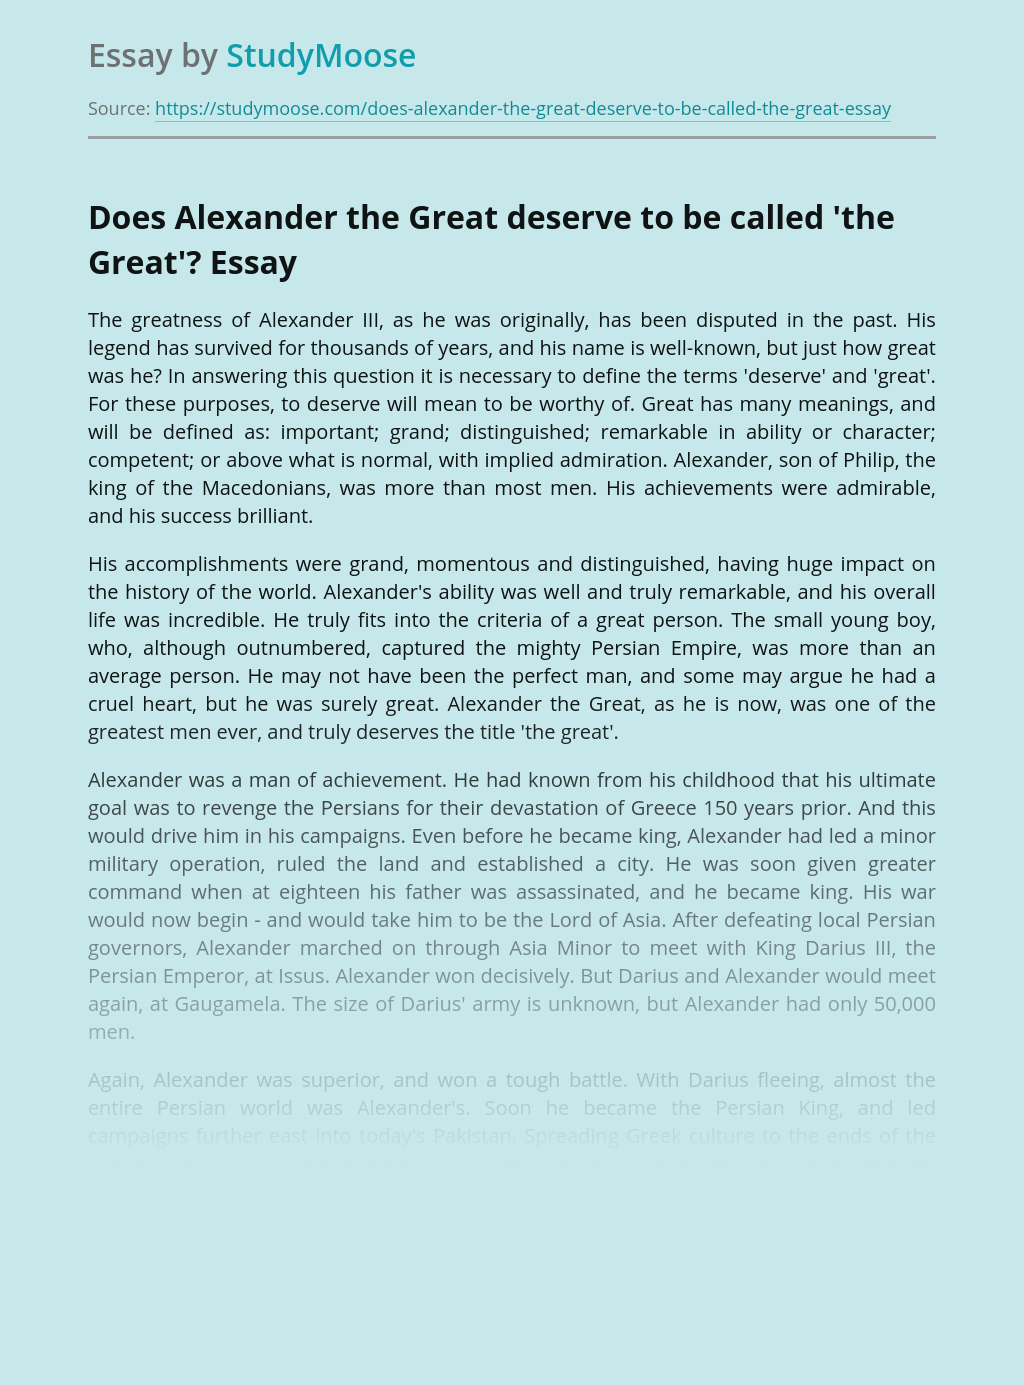 Does Alexander the Great deserve to be called 'the Great'?